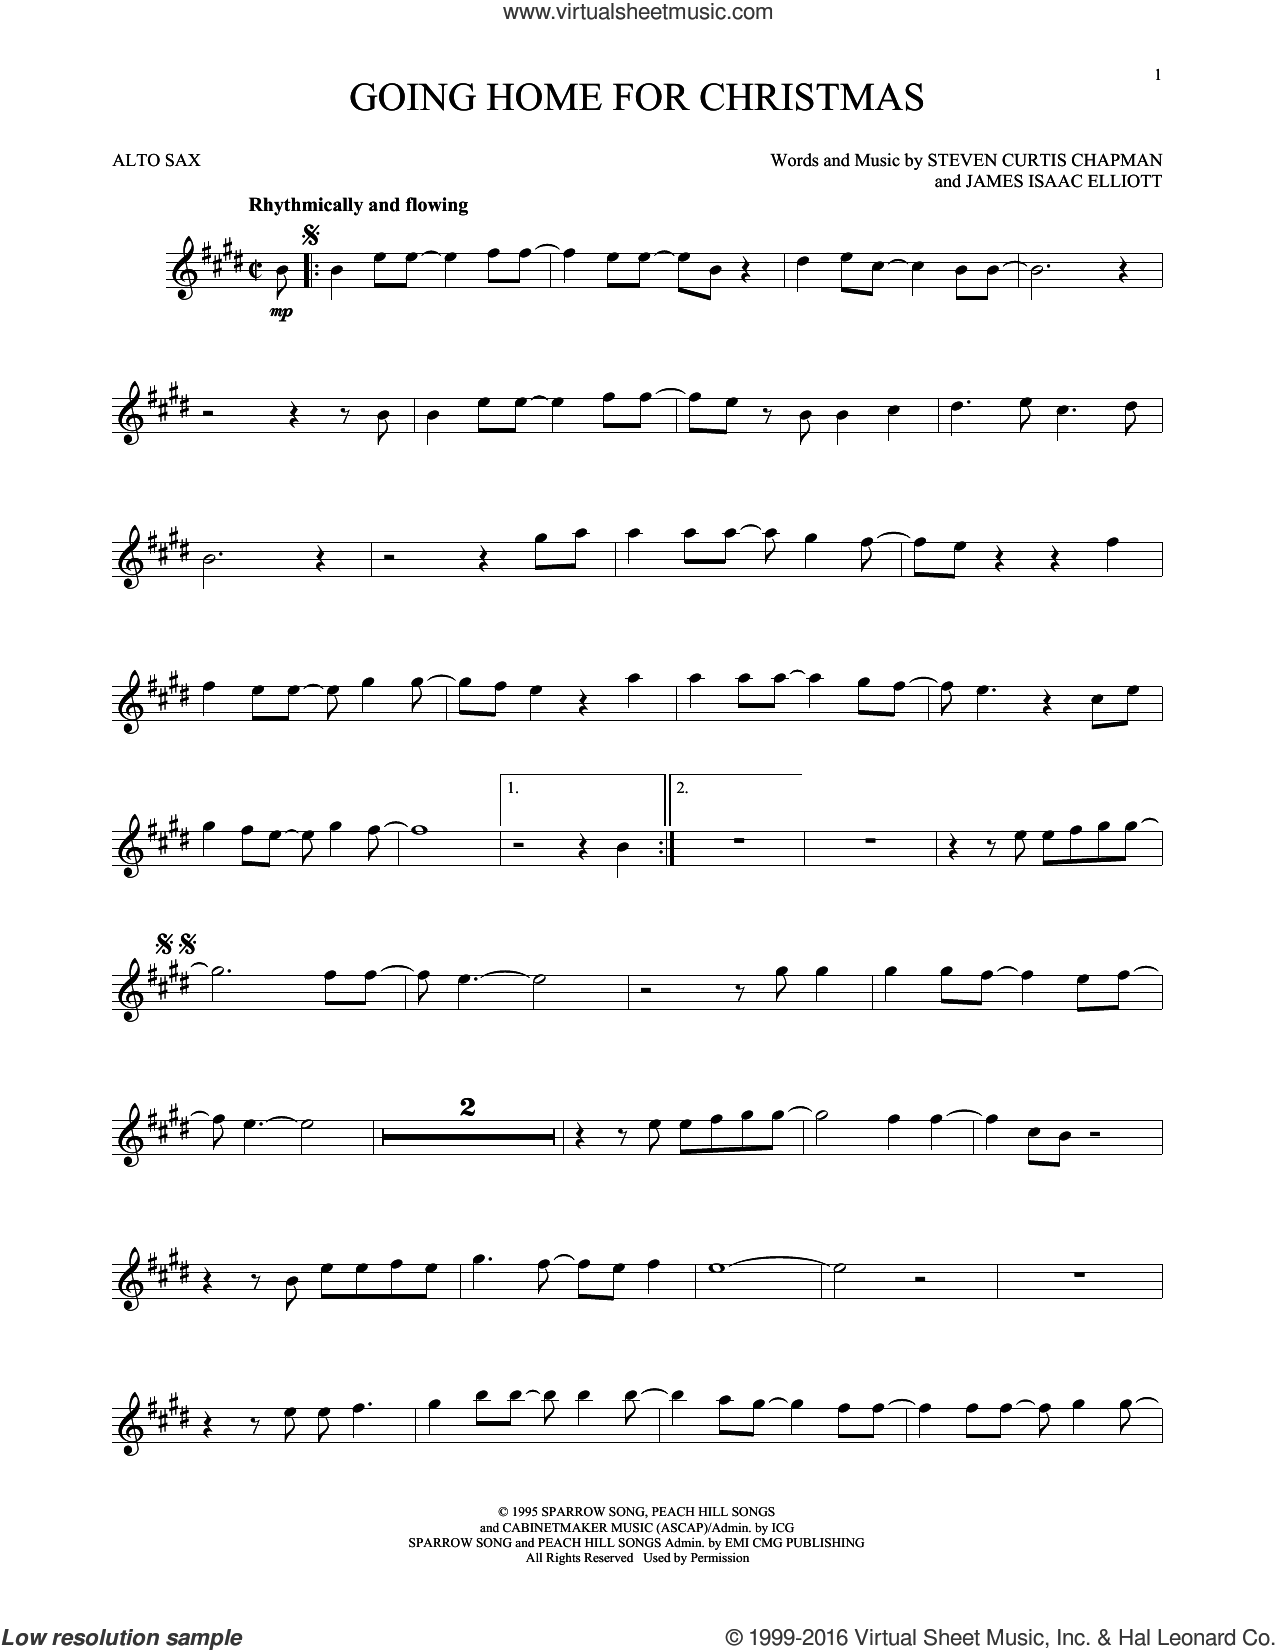 Going Home For Christmas sheet music for alto saxophone solo by Steven Curtis Chapman and James Isaac Elliott, intermediate